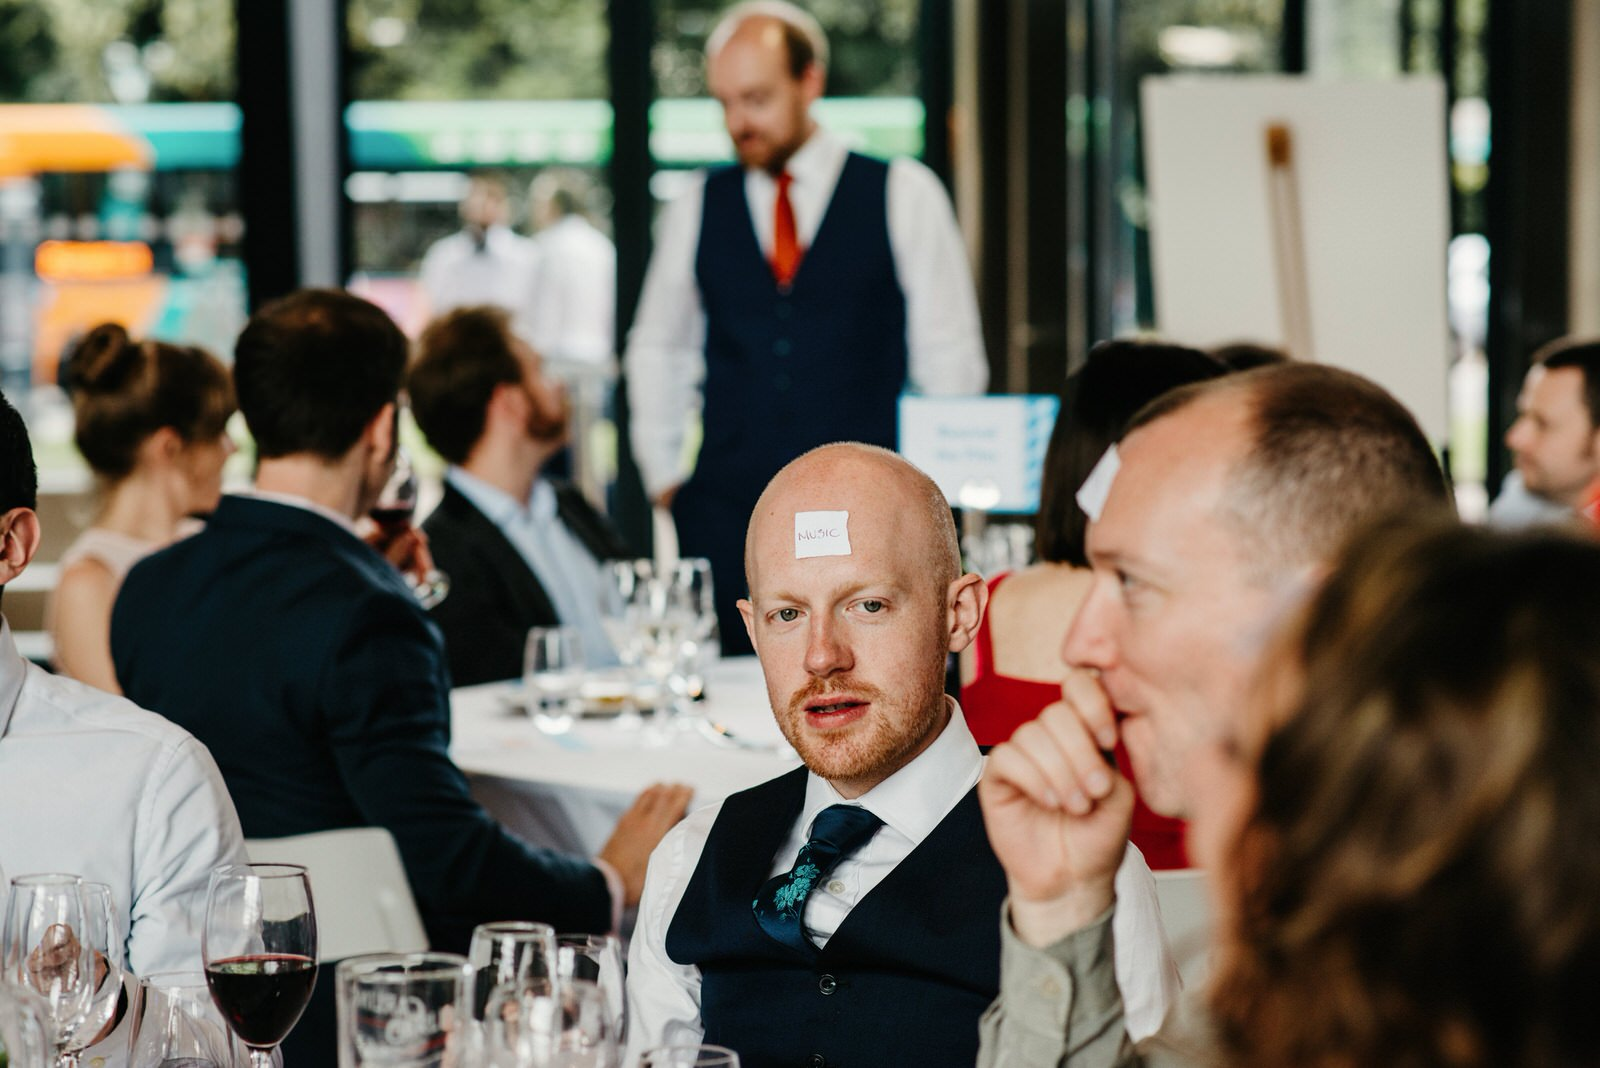 wedding guests playing games during speeches at the Royal College of Music and Drama